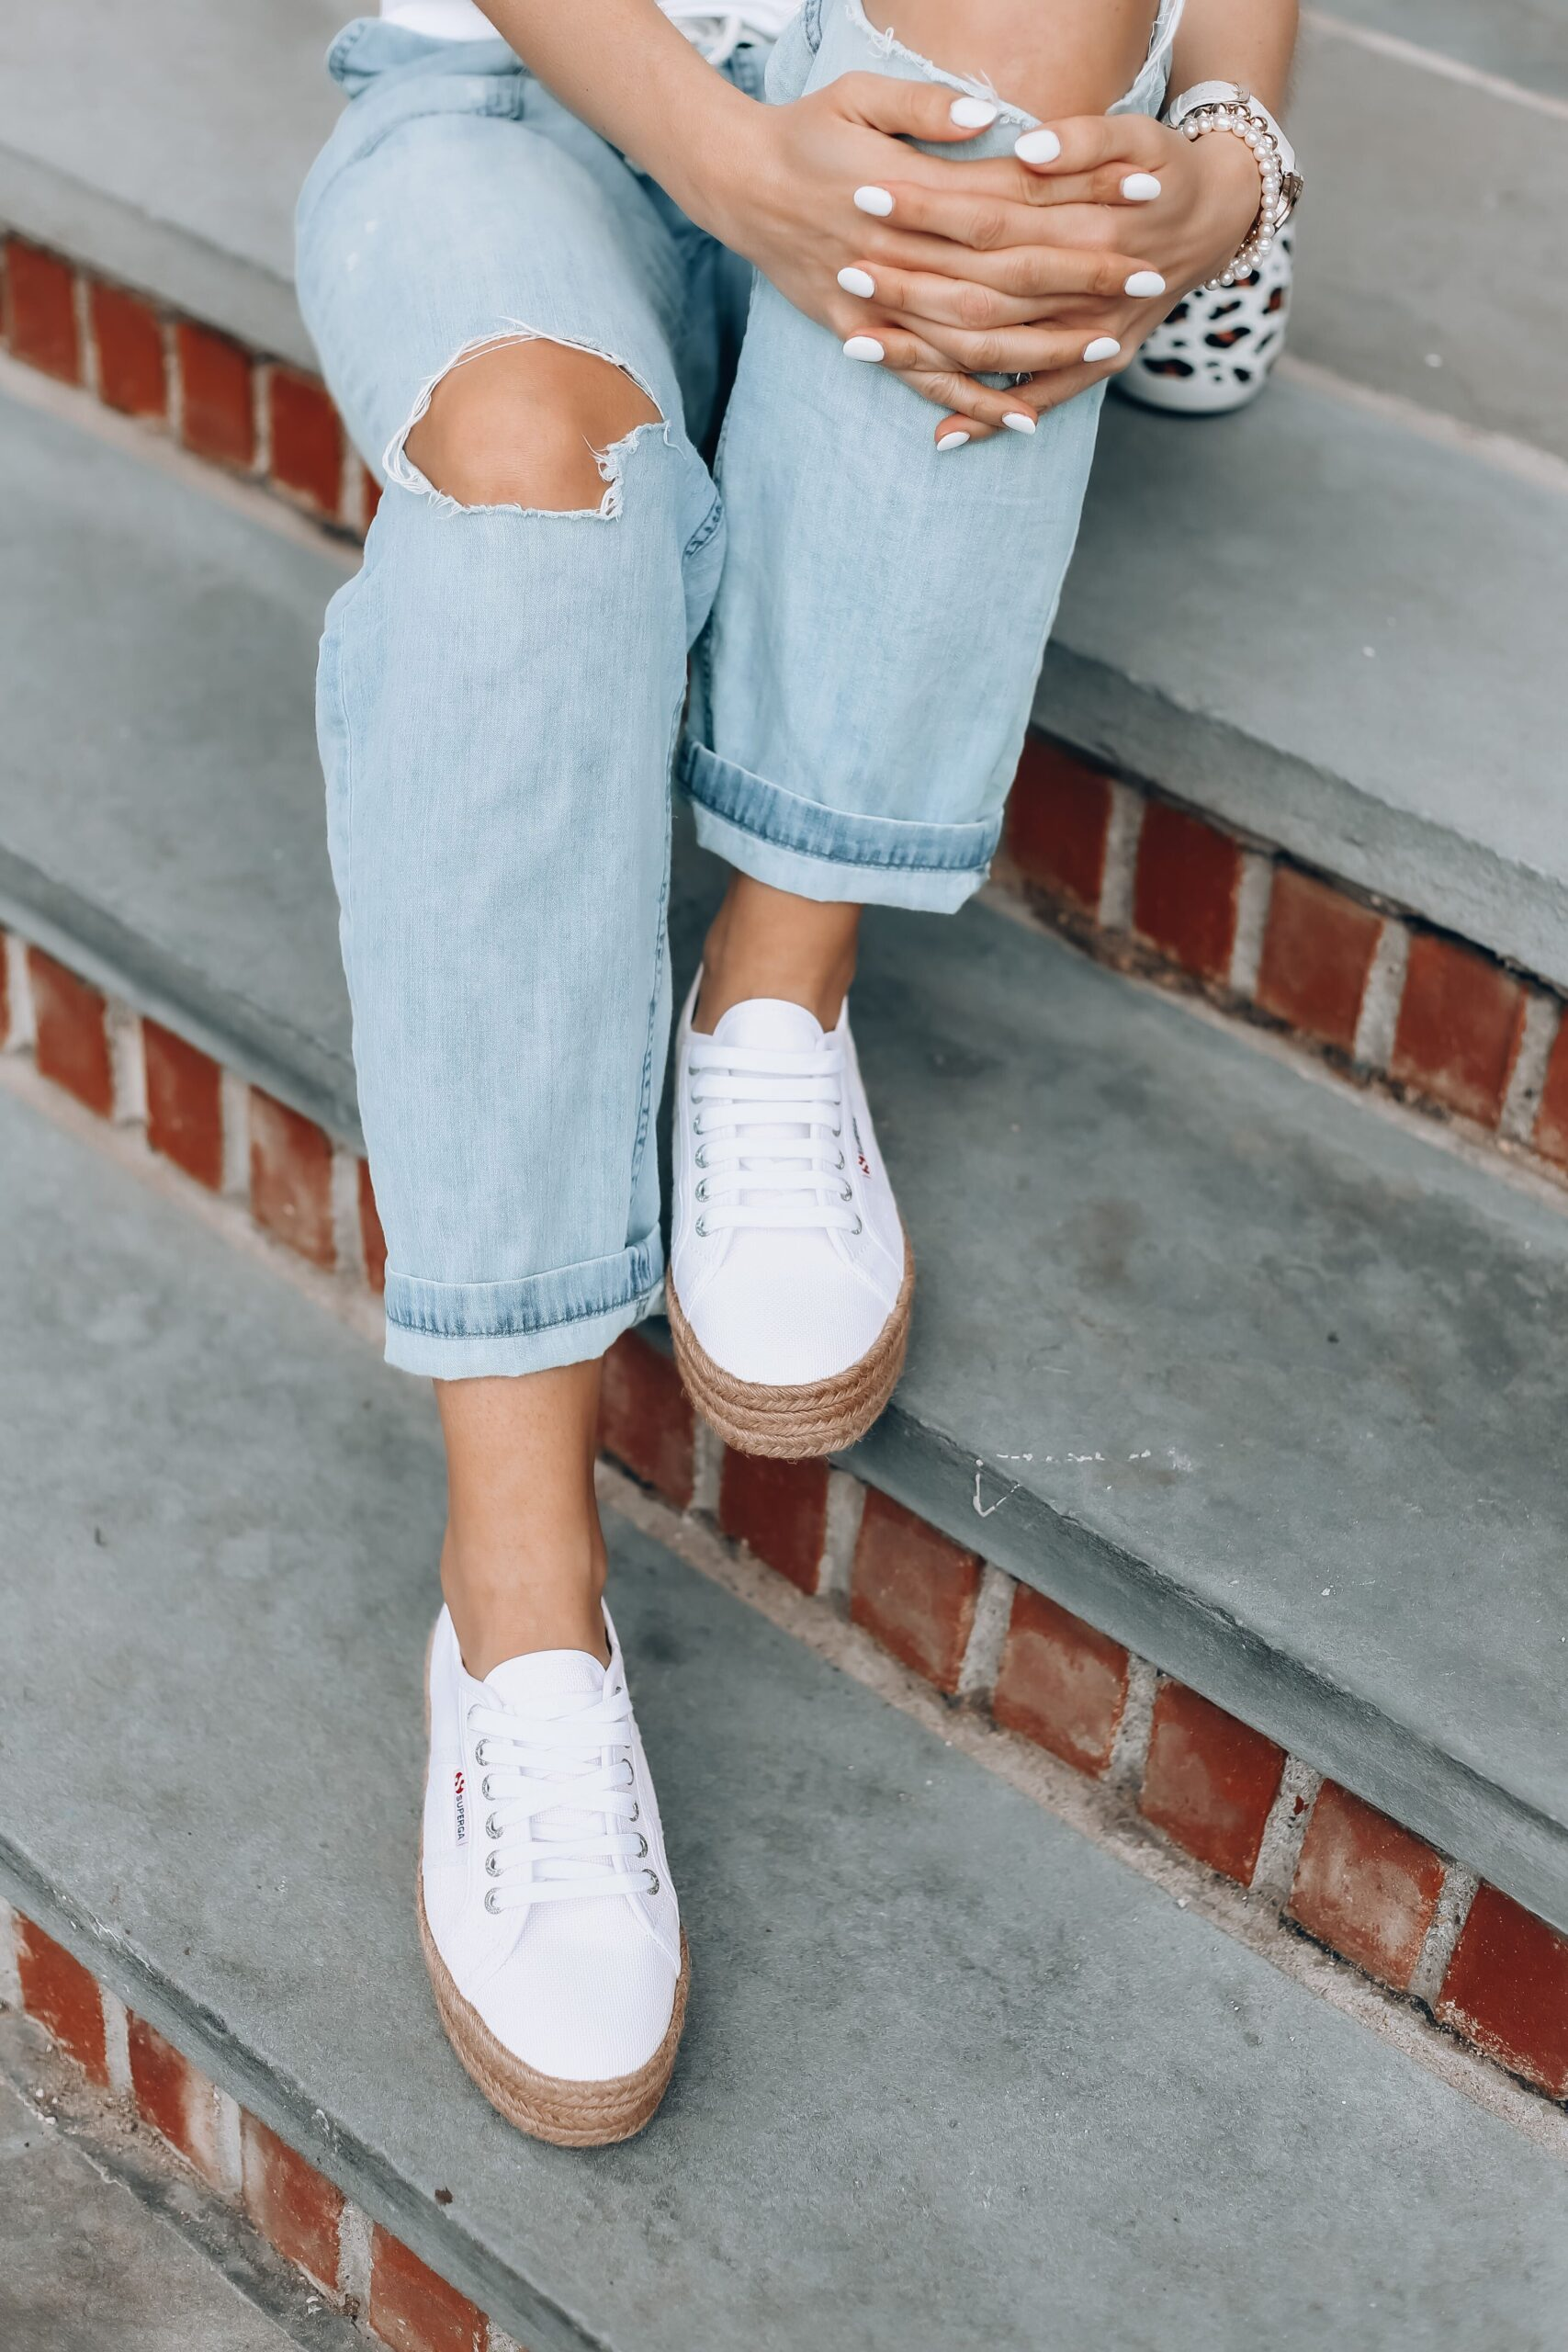 Spring Shoe Styles and Outfit Ideas